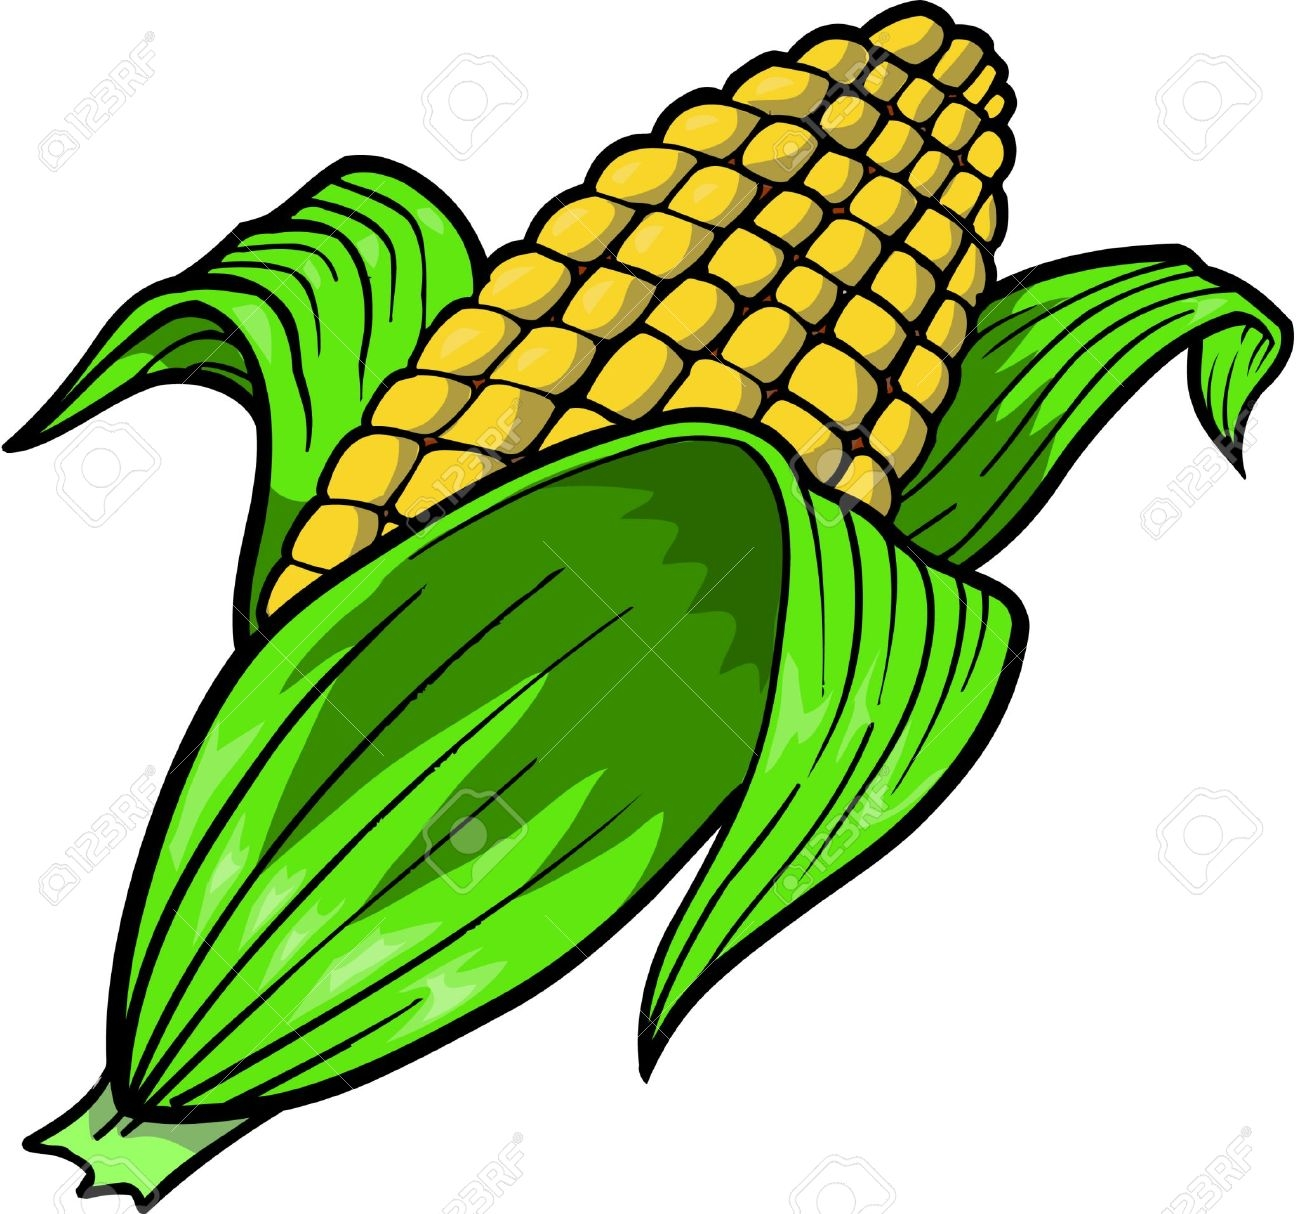 corn clipart at getdrawings com free for personal use corn clipart rh getdrawings com corn clipart corn clipart